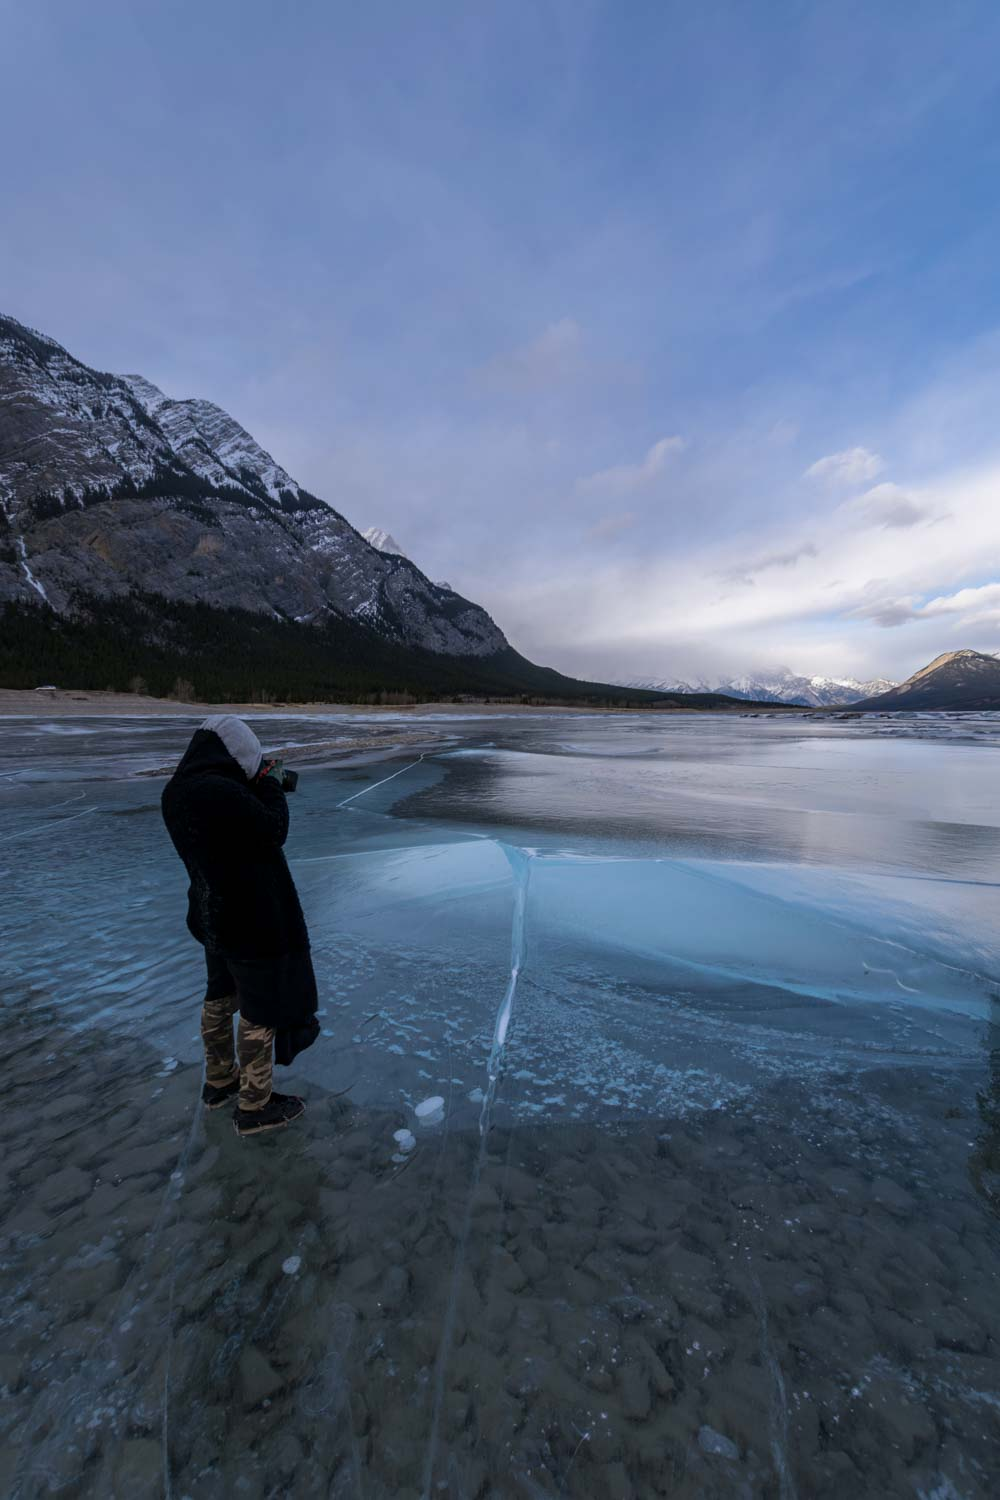 Walking on shallow ice at Preacher's Point